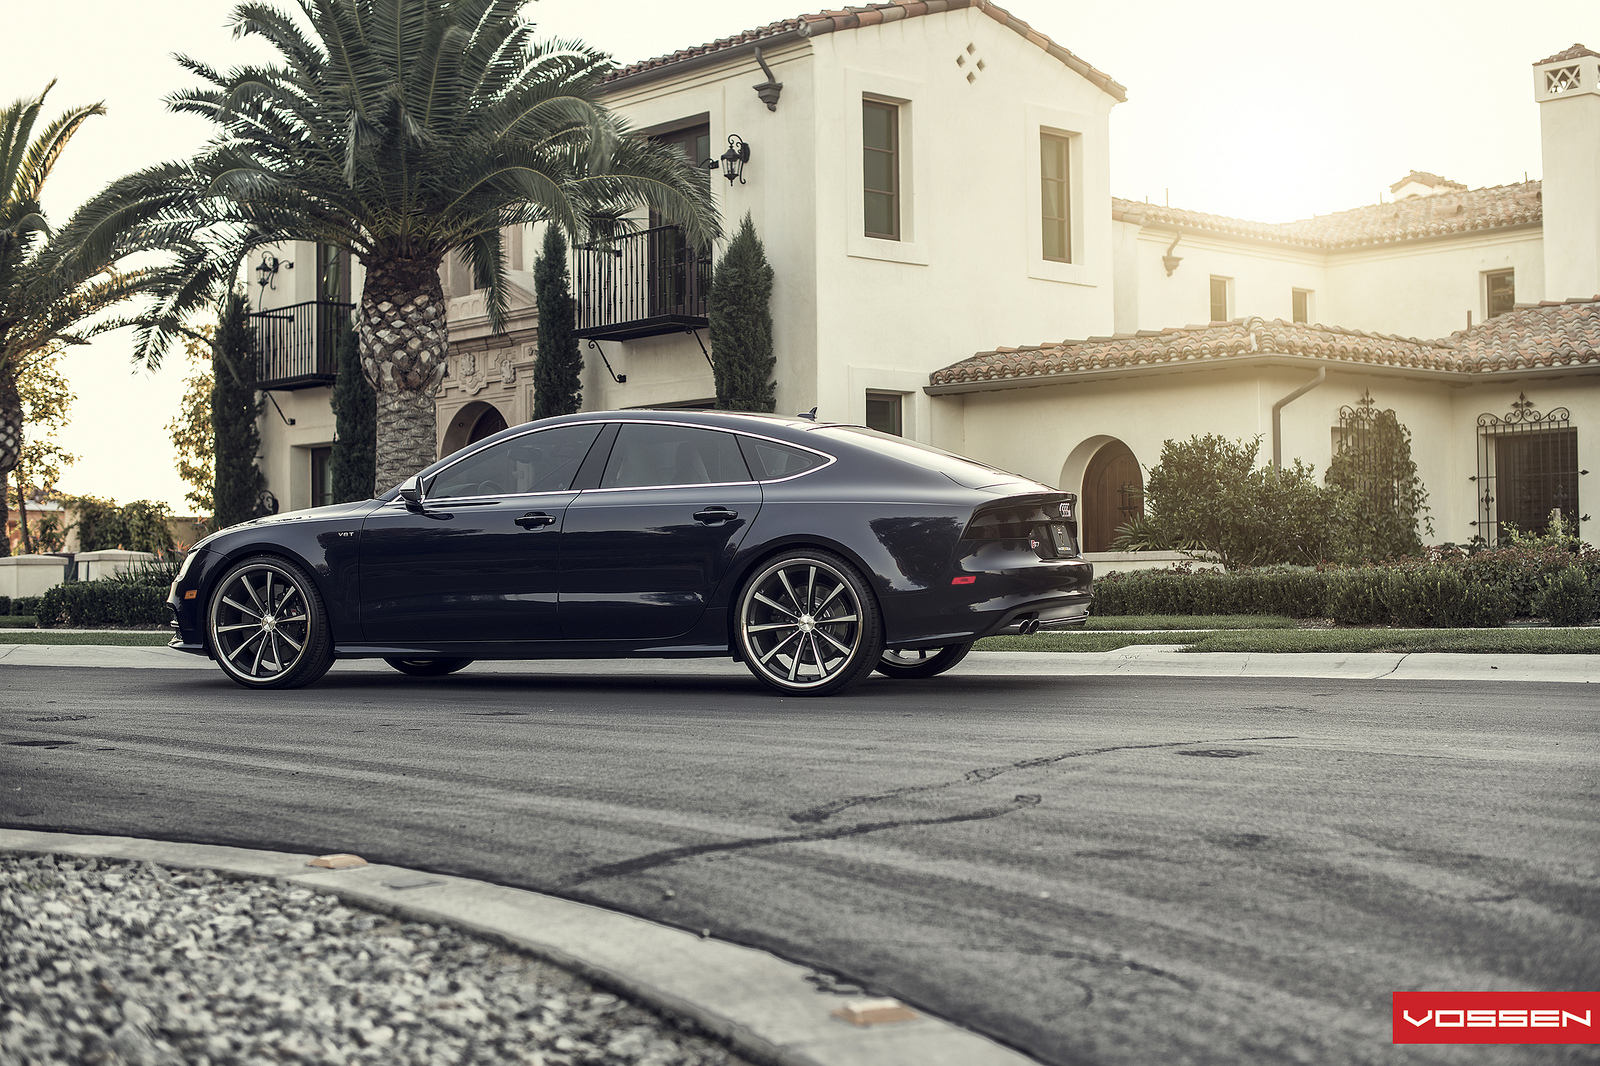 2013 Audi S7 on Vosen Wheels - autoevolution